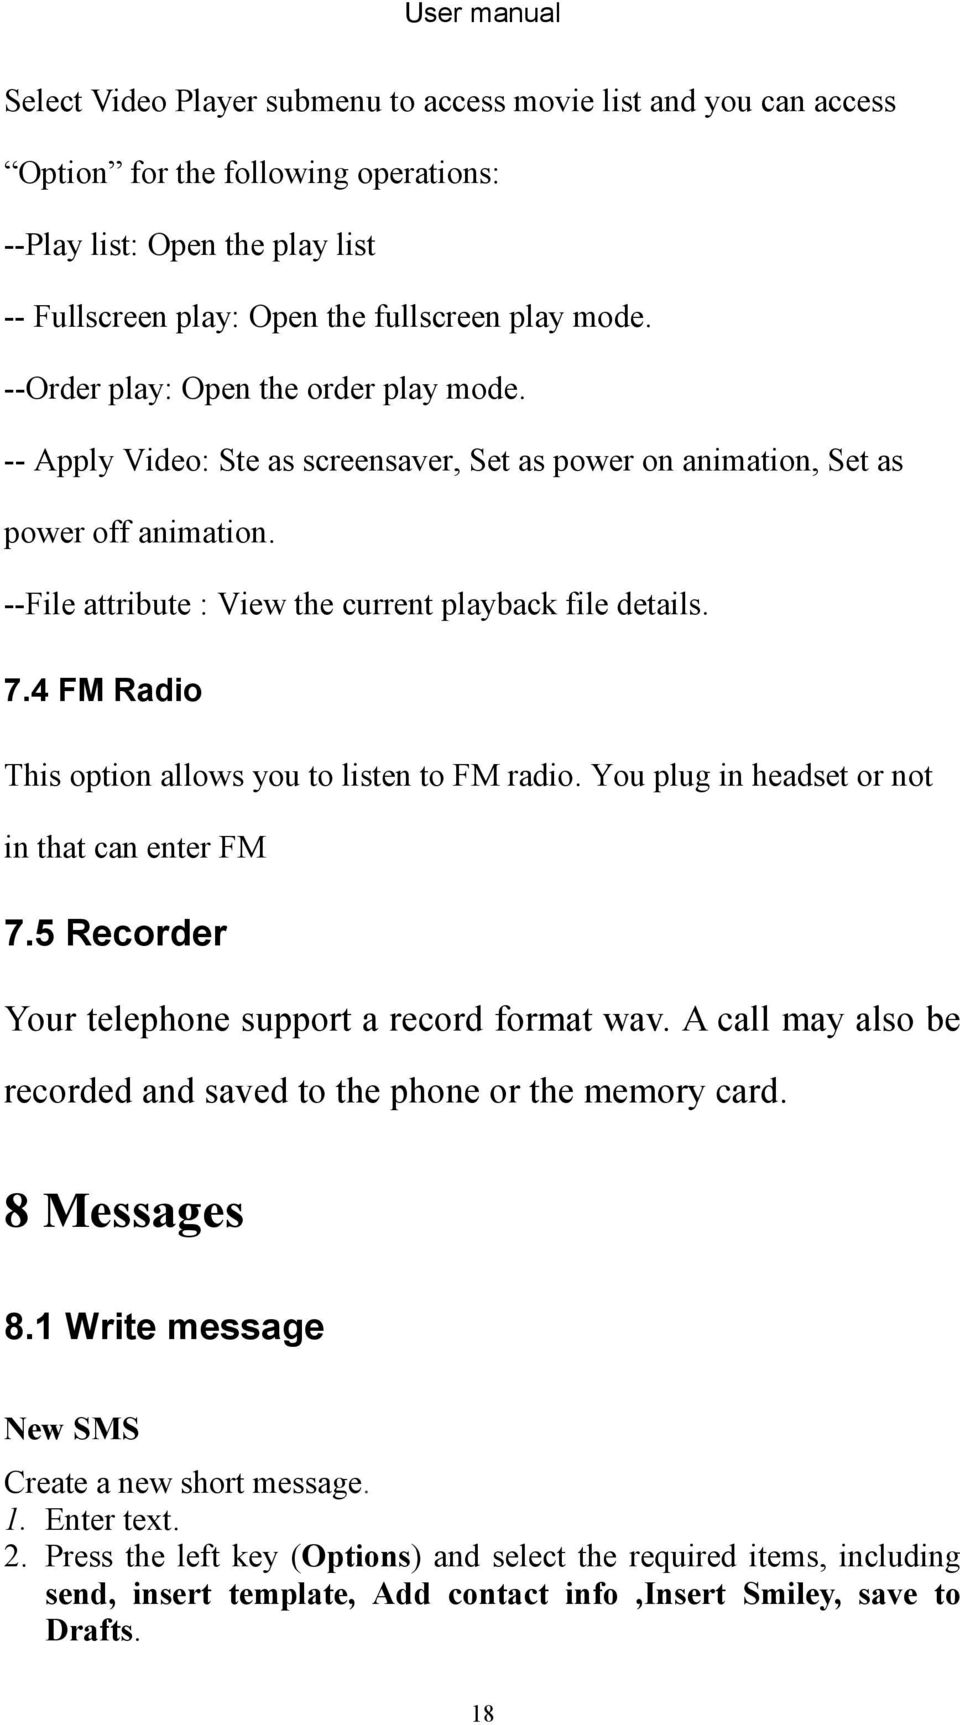 4 FM Radio This option allows you to listen to FM radio. You plug in headset or not in that can enter FM 7.5 Recorder Your telephone support a record format wav.